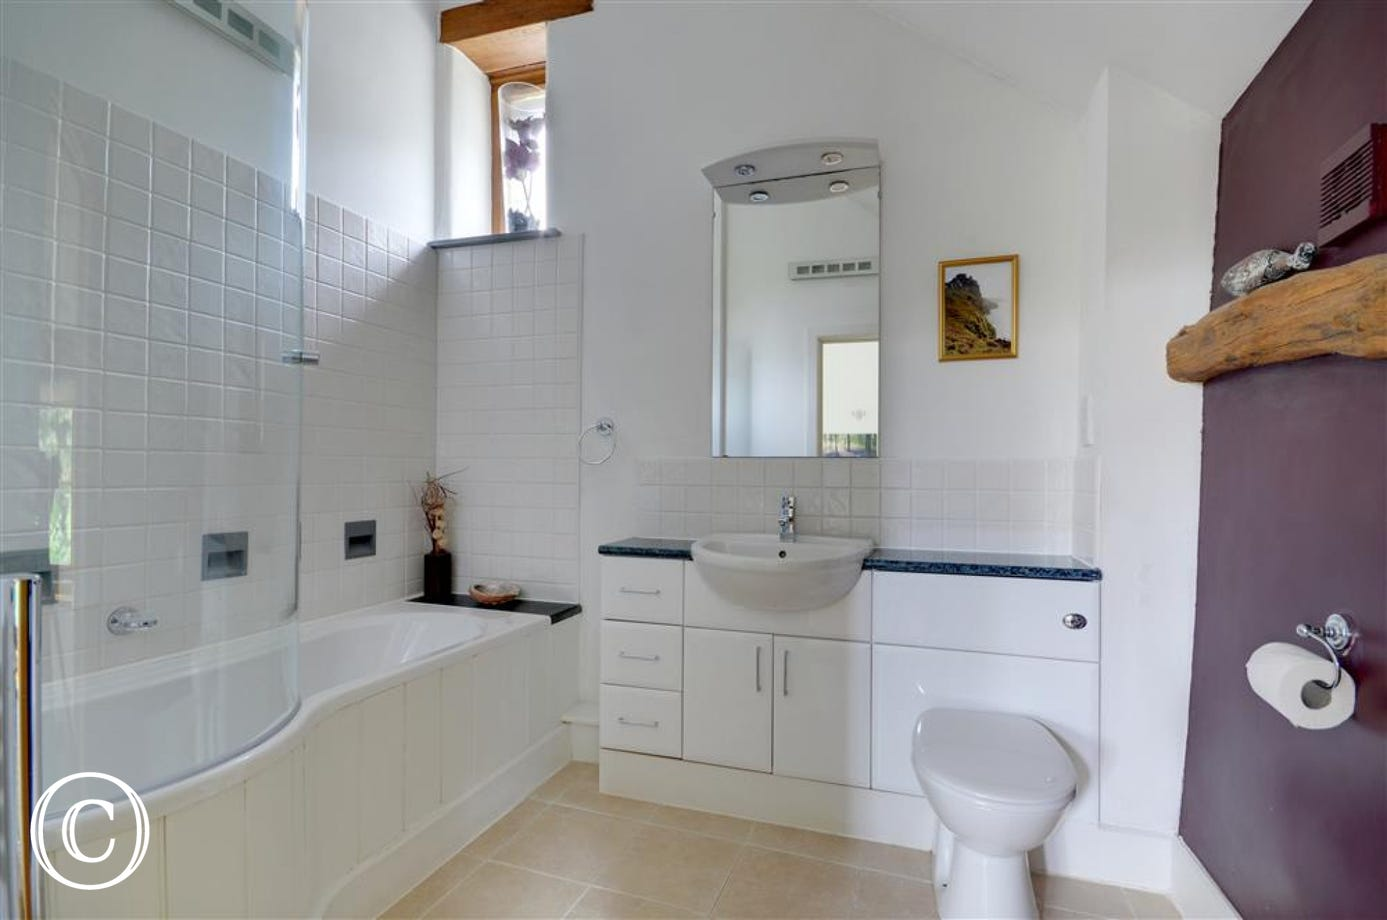 High-ceilinged bathroom with feature wall decor